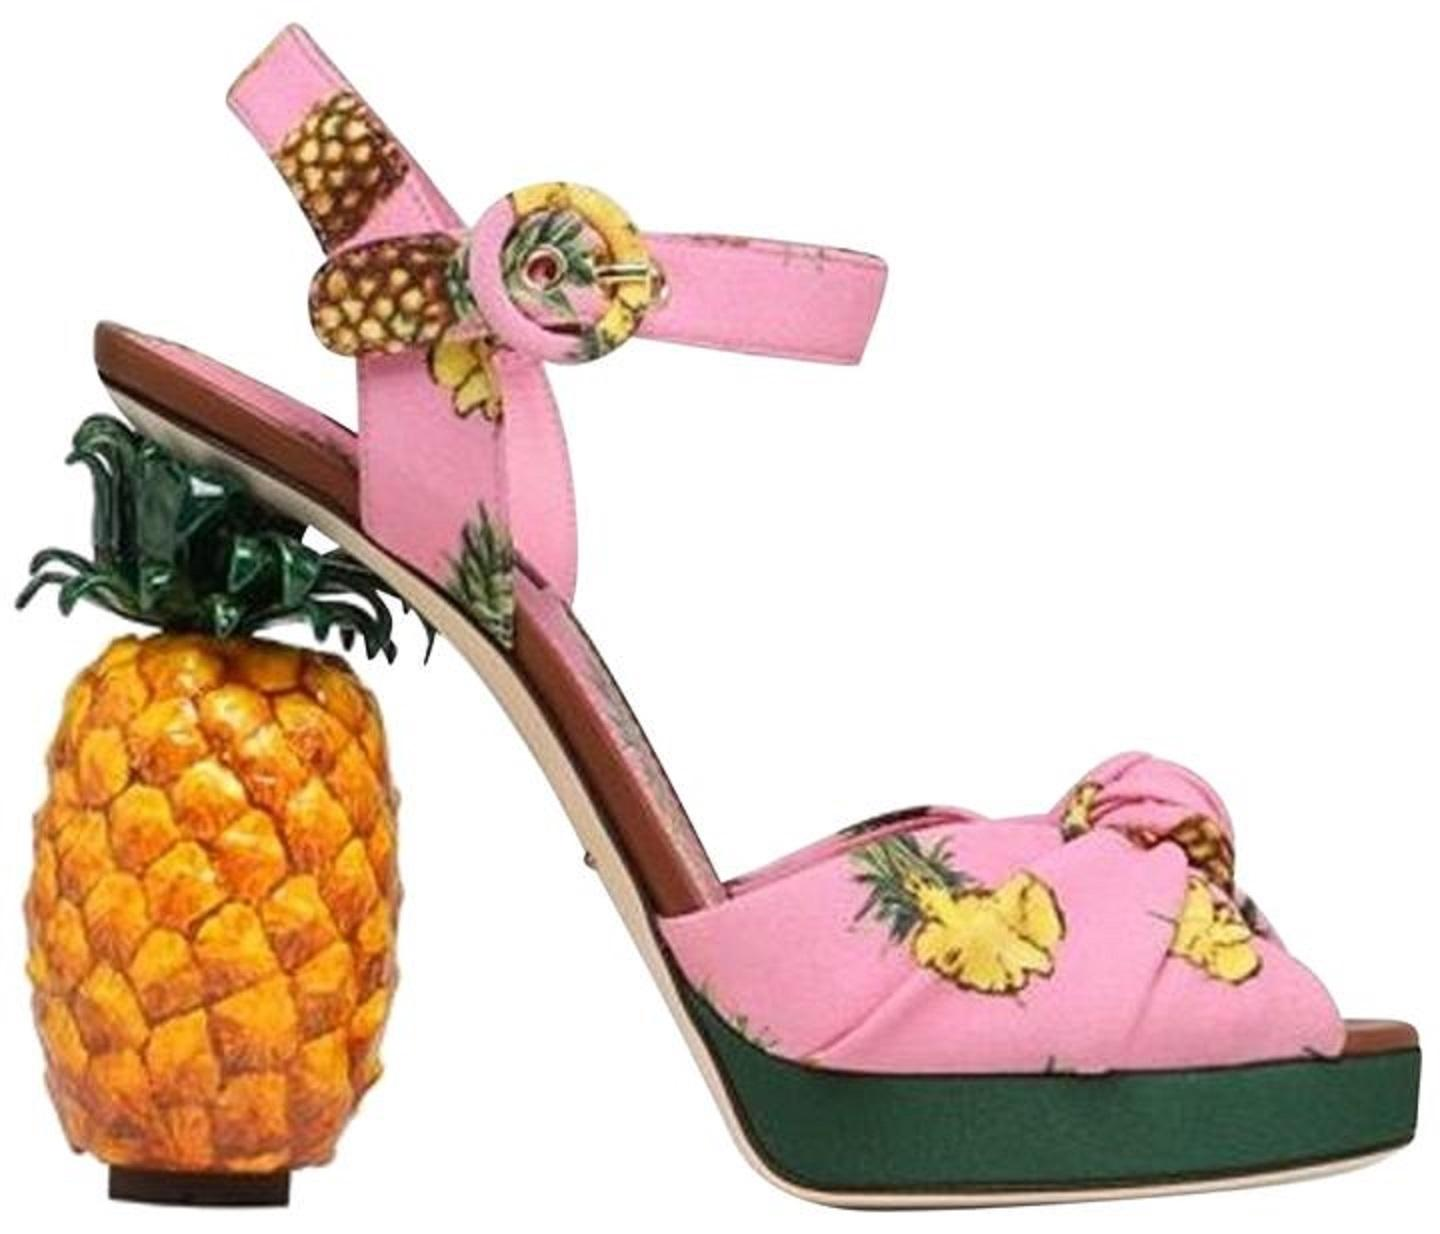 c008240fe8a Dolce Gabbana New Keira Pineapple Cady Sandals Size EU 38 38 38 (Approx. US  8